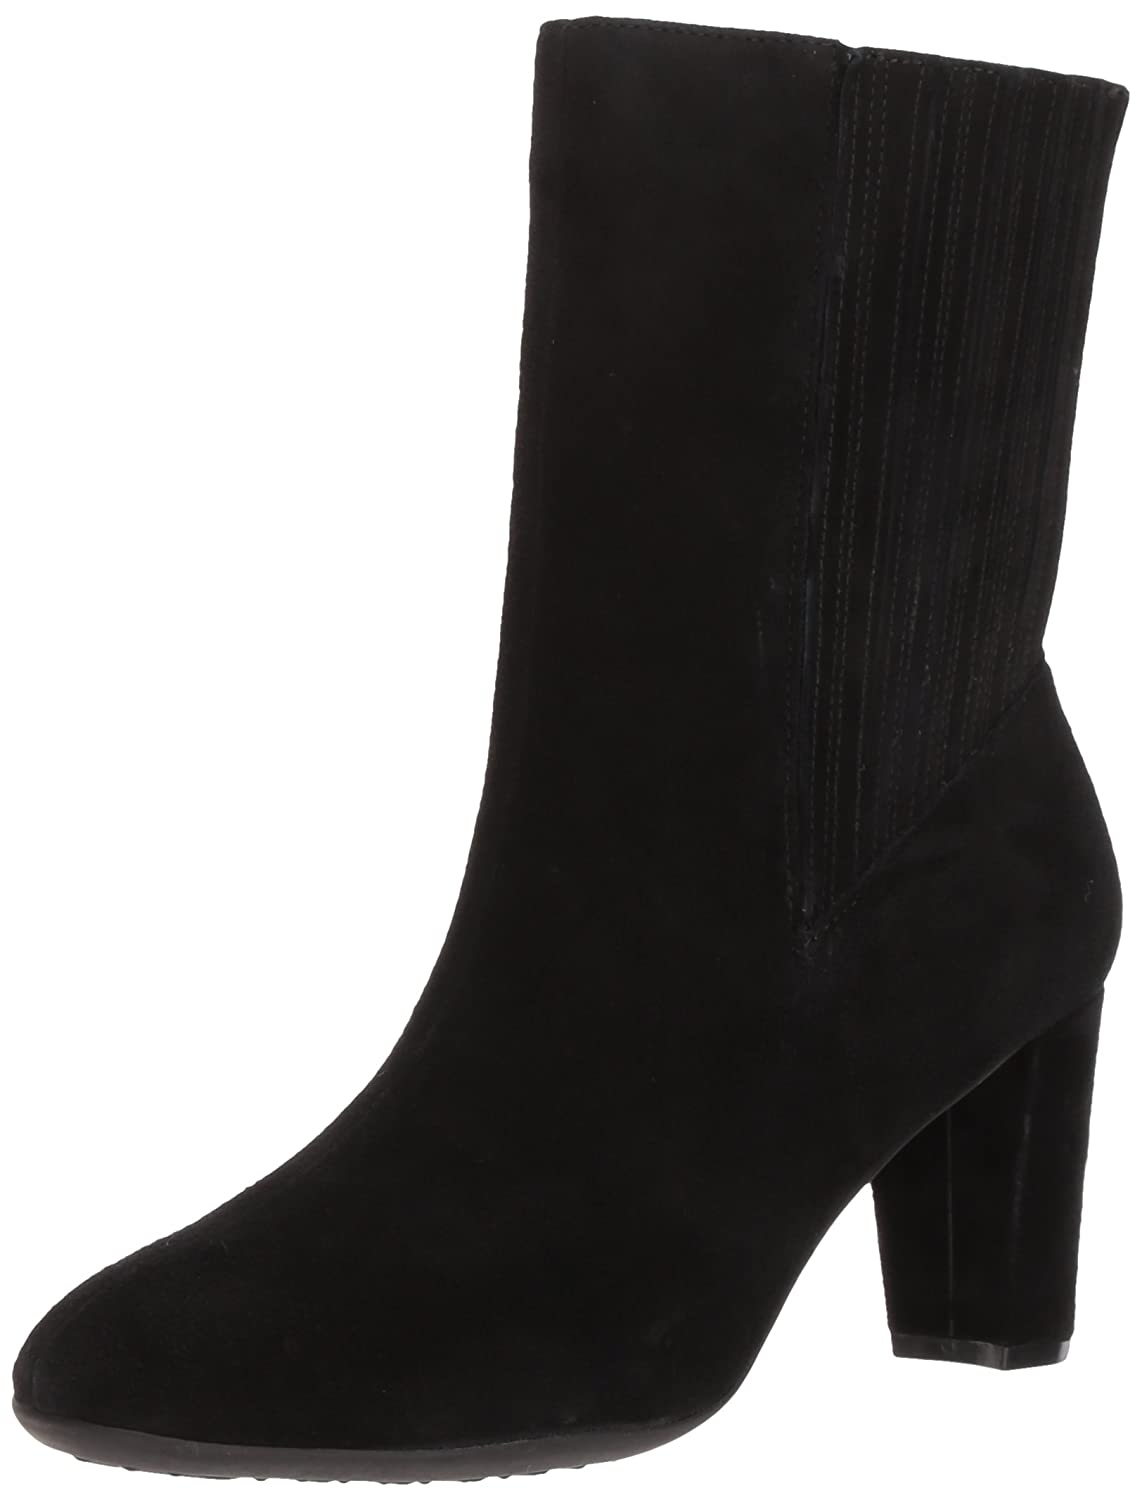 Aerosoles Women's Fifth Ave Mid Calf Boot B06Y5TNJLS 11 B(M) US|Black Suede